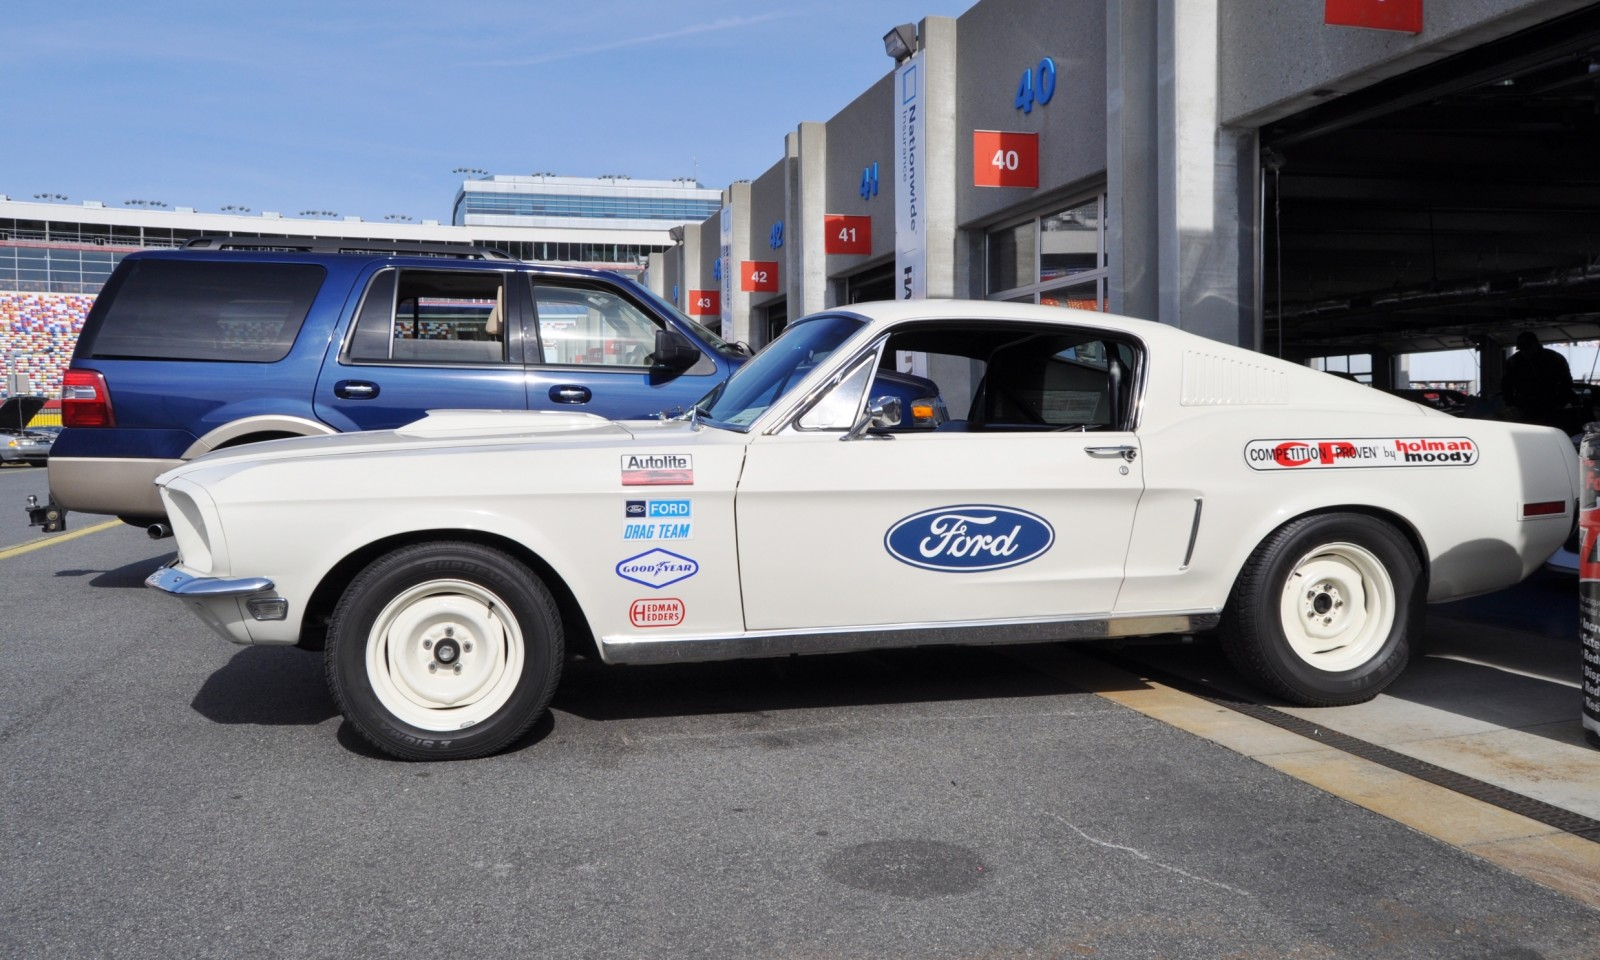 1968 Ford Drag Team - Mustang 428 Cobra Jet 5